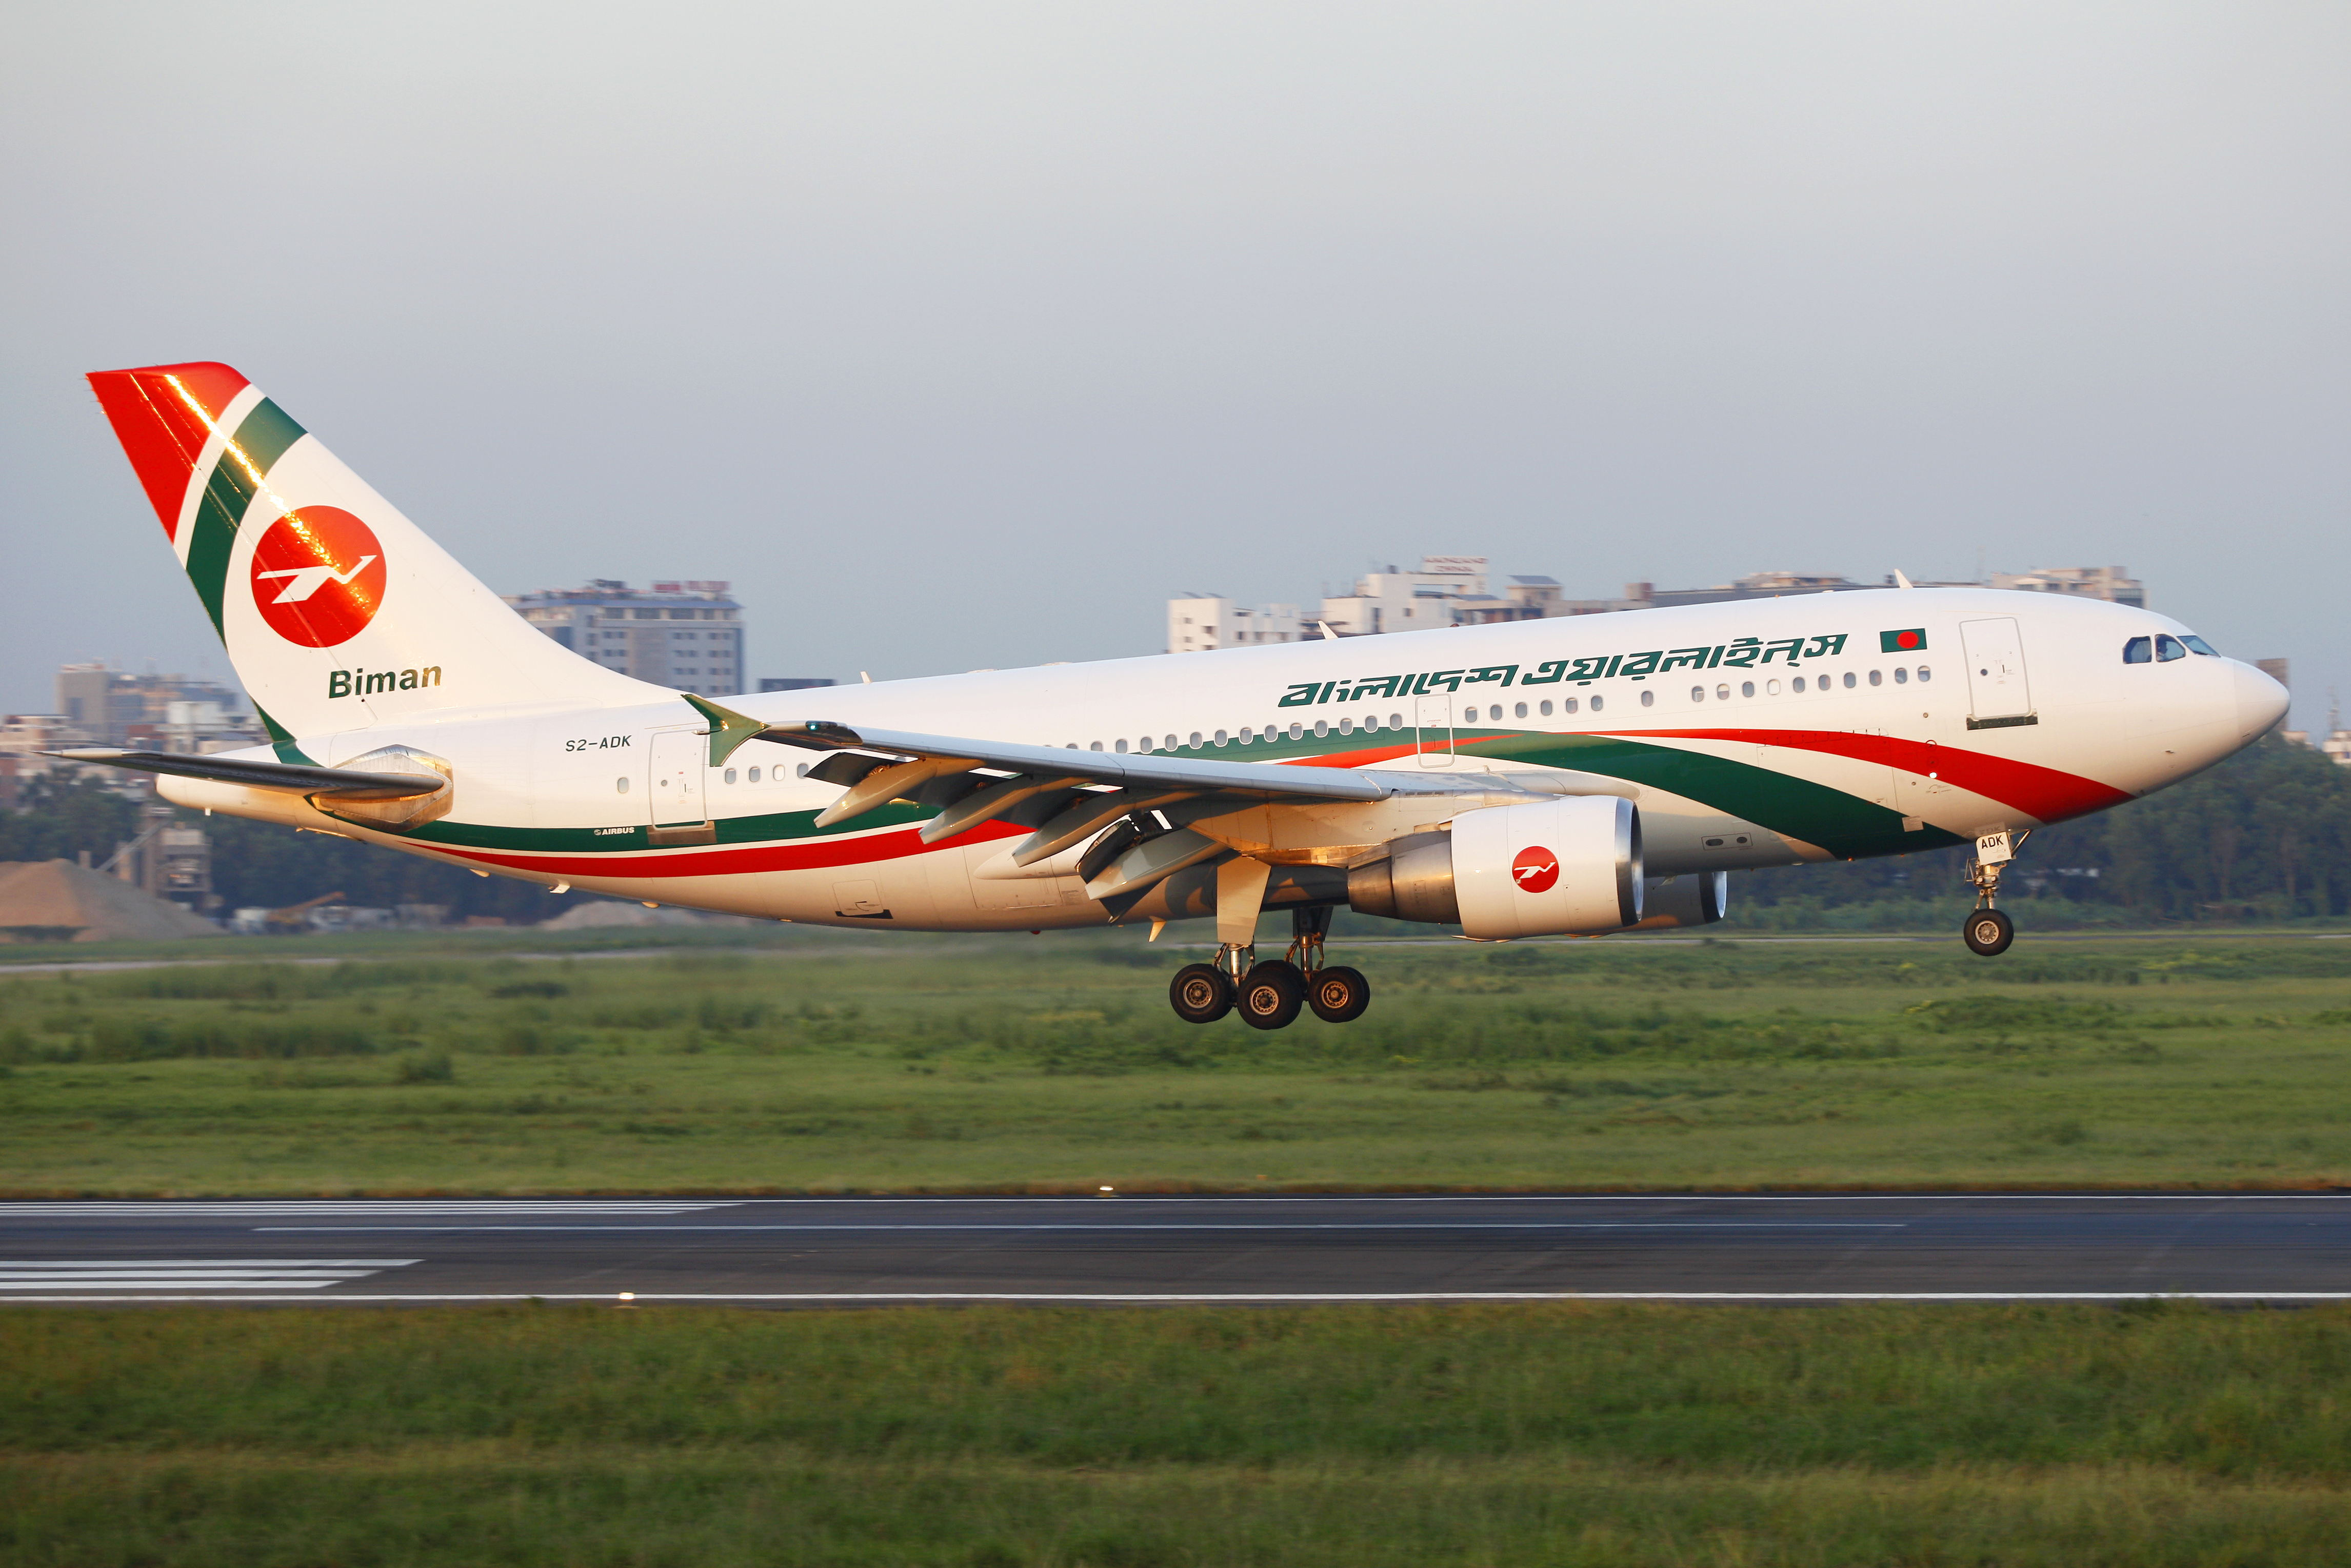 Biman airlines from UK to Dhaka